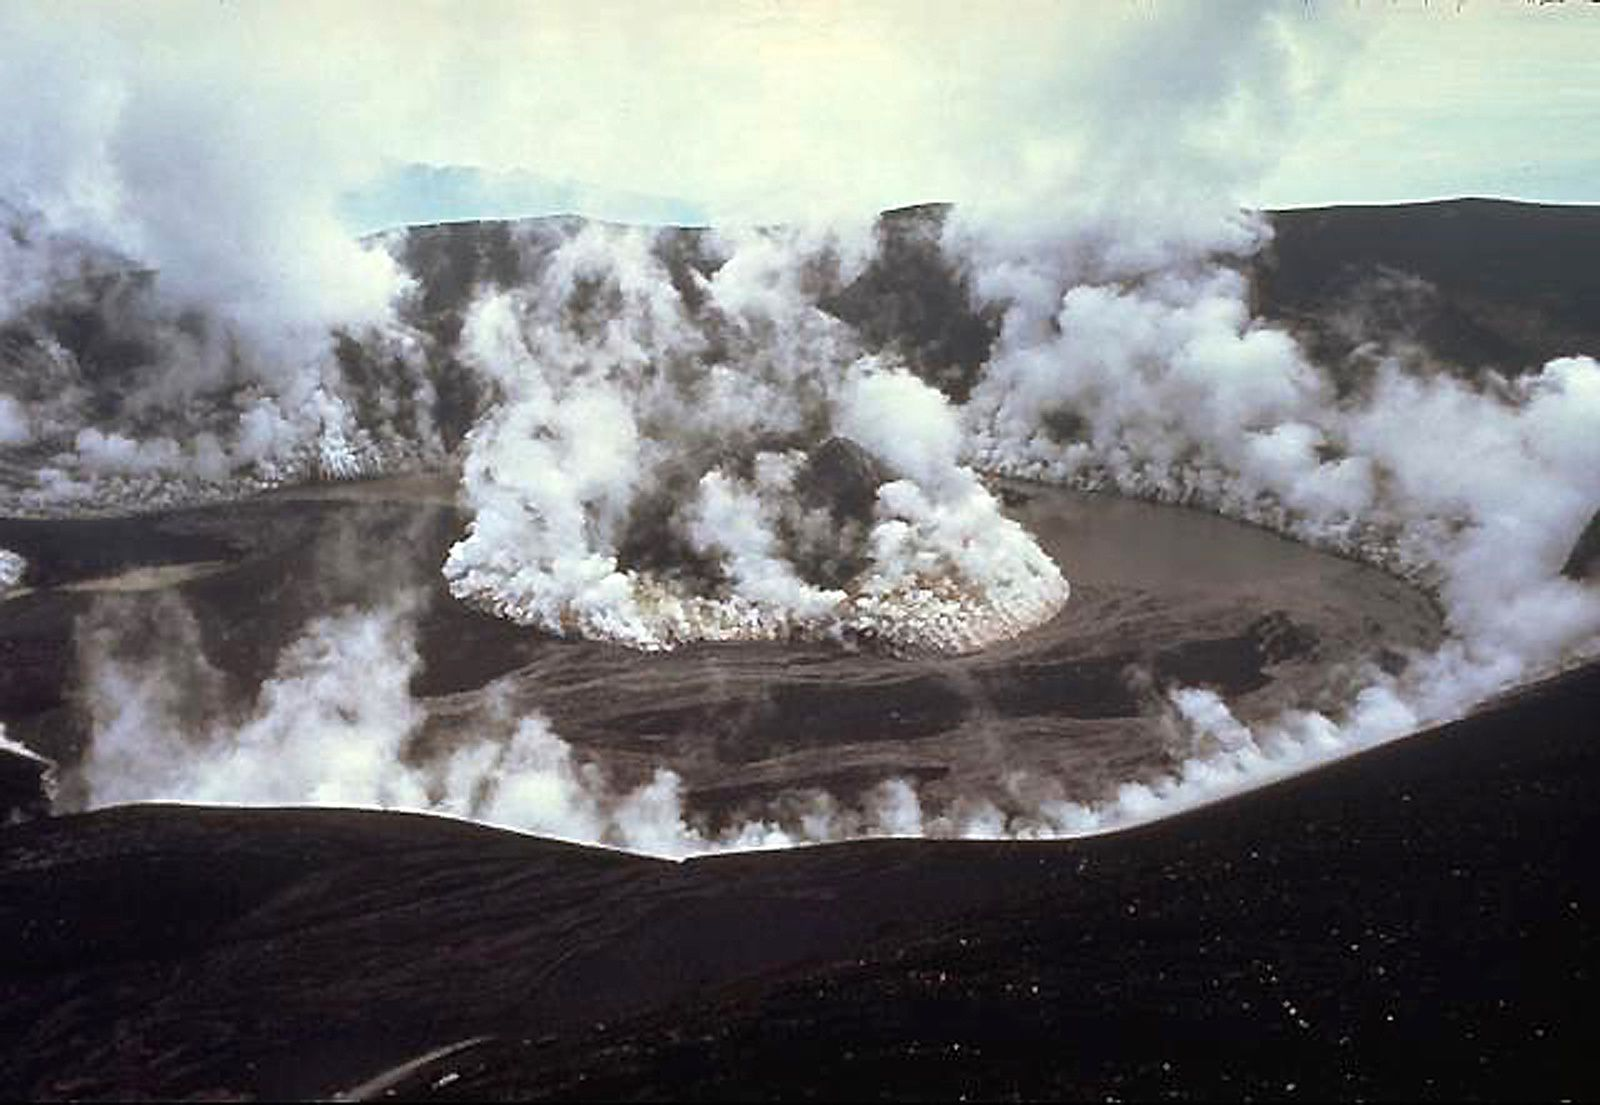 Galunggung 02.05.1983 ... one month after the end of the eruption, clouds of steam escaping from the cinder cone formed at the center of the crater and the inner edges of the caldera; lake begins to form which will engulf almost the entire cone - photo Don Peterson USGS.